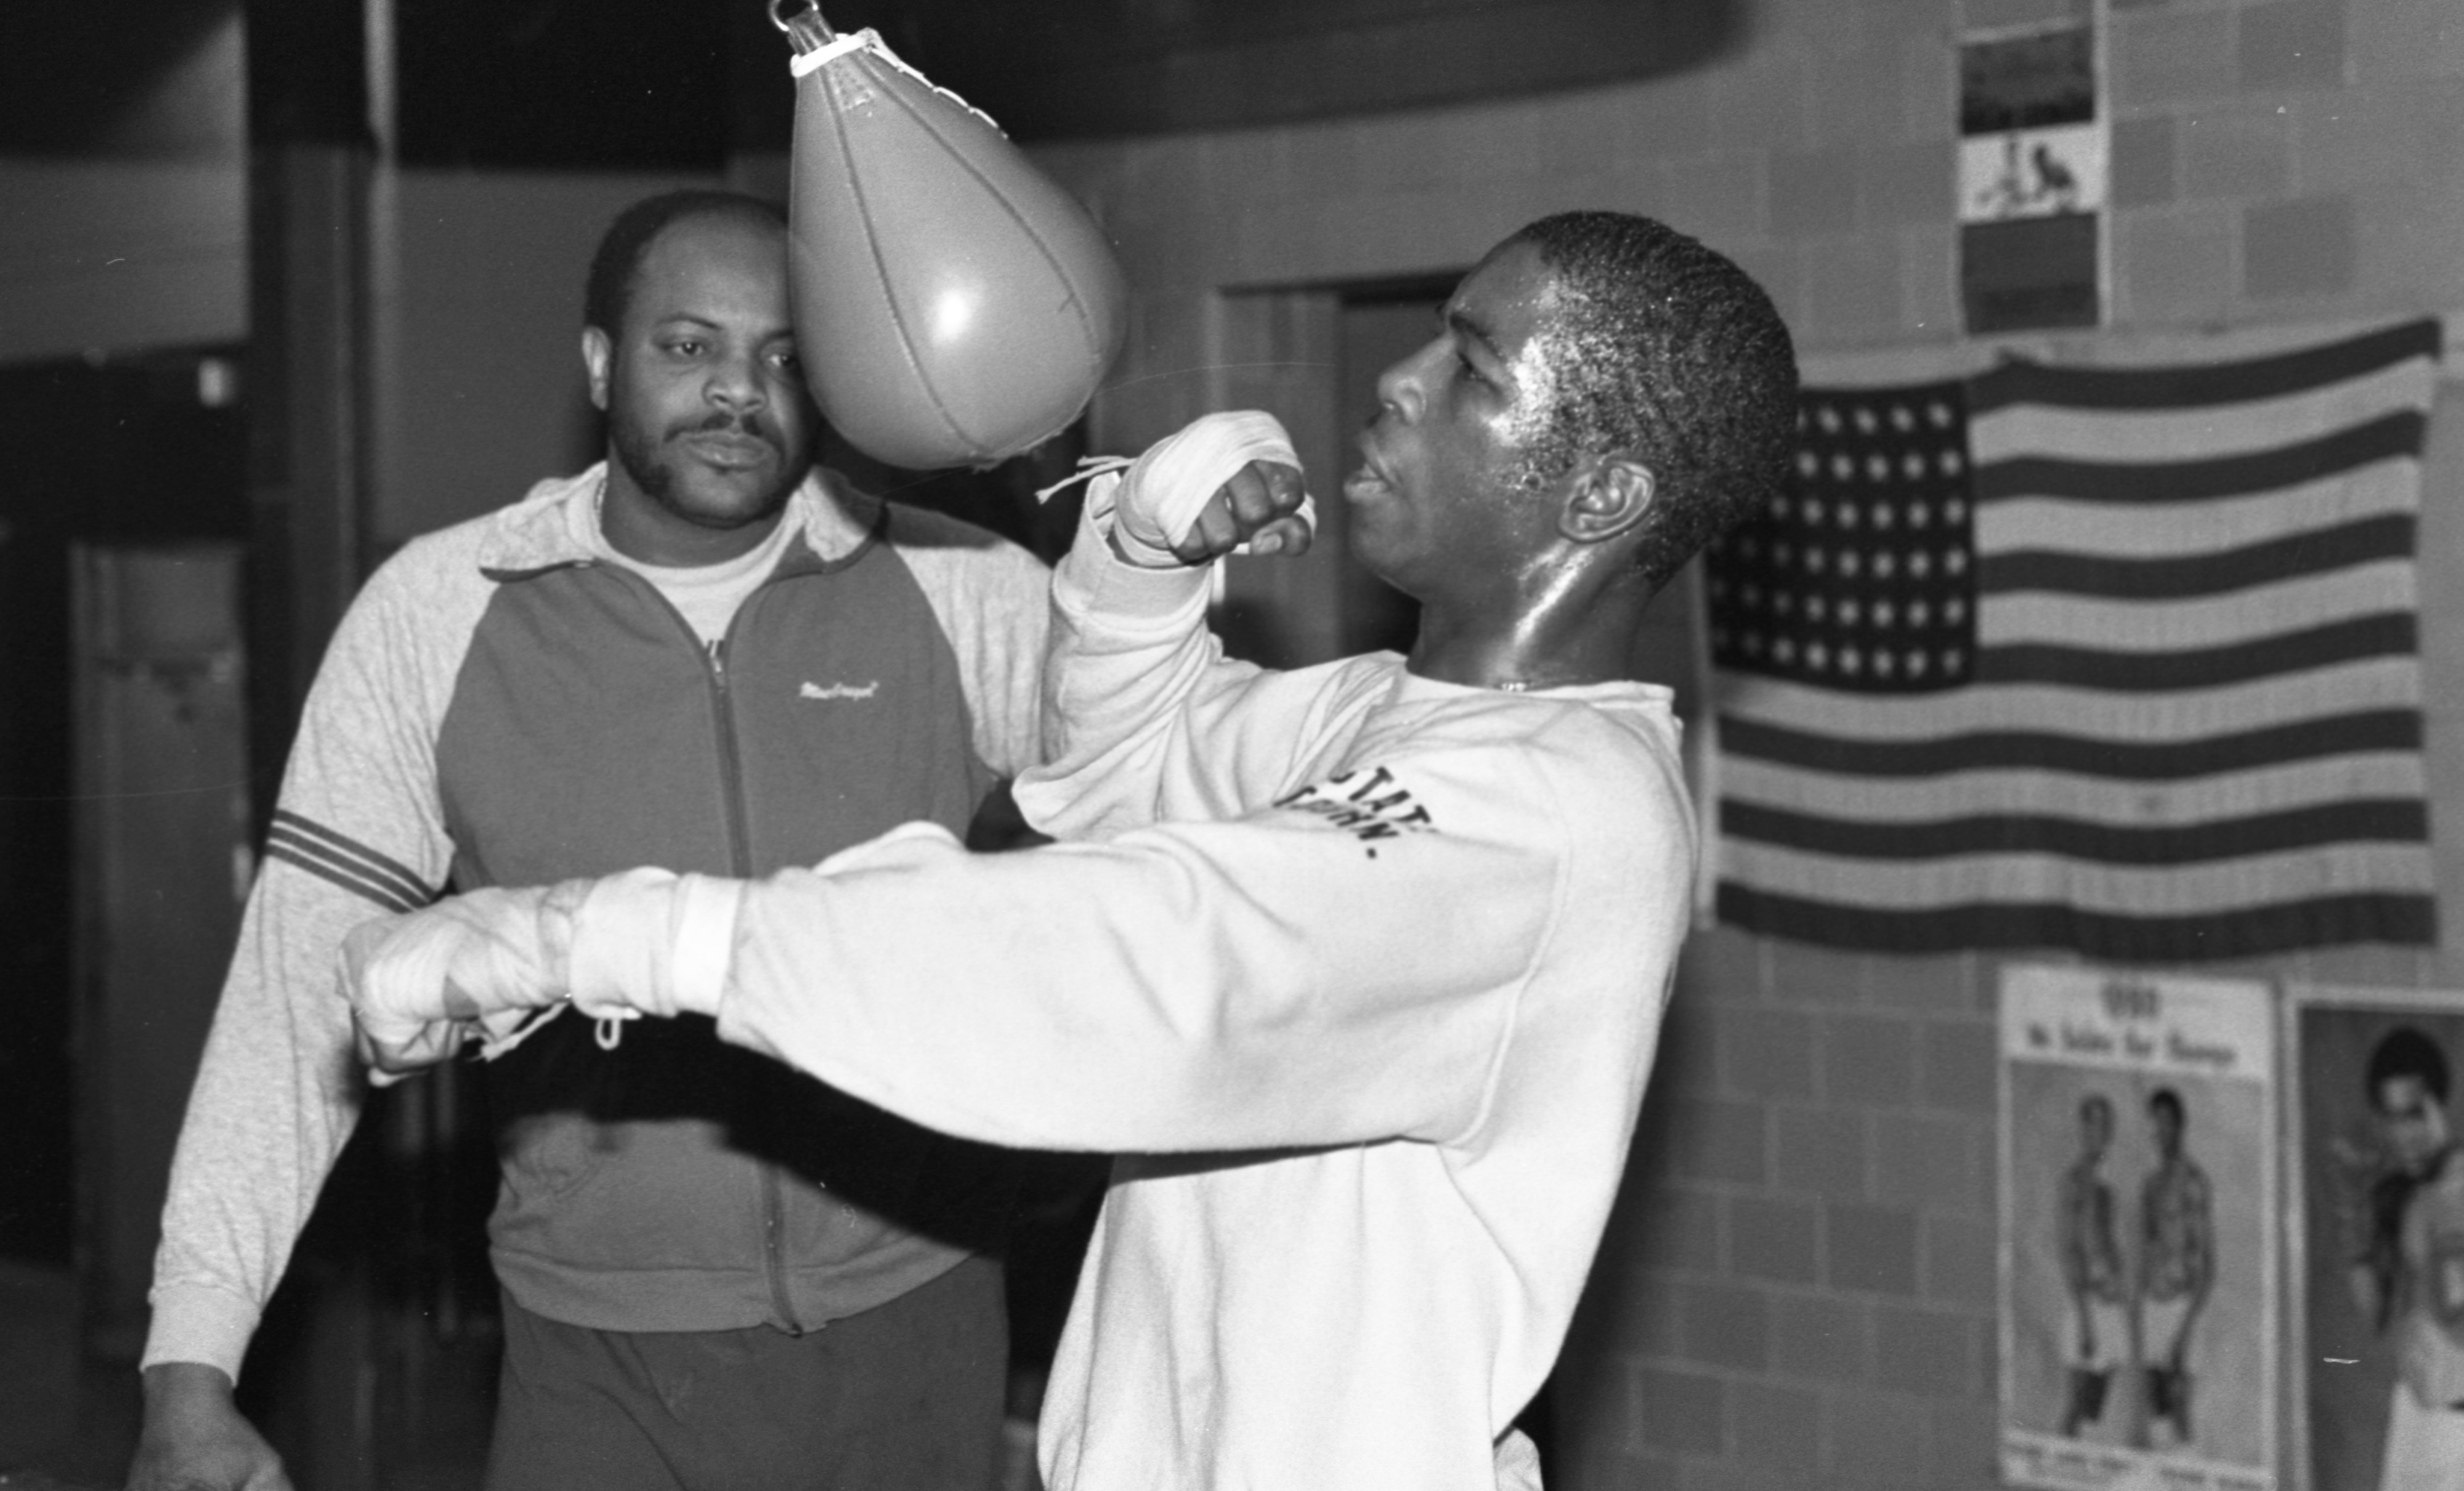 Derrick McGuire, Boxer, Works On The Speed Bag, December 1982 image